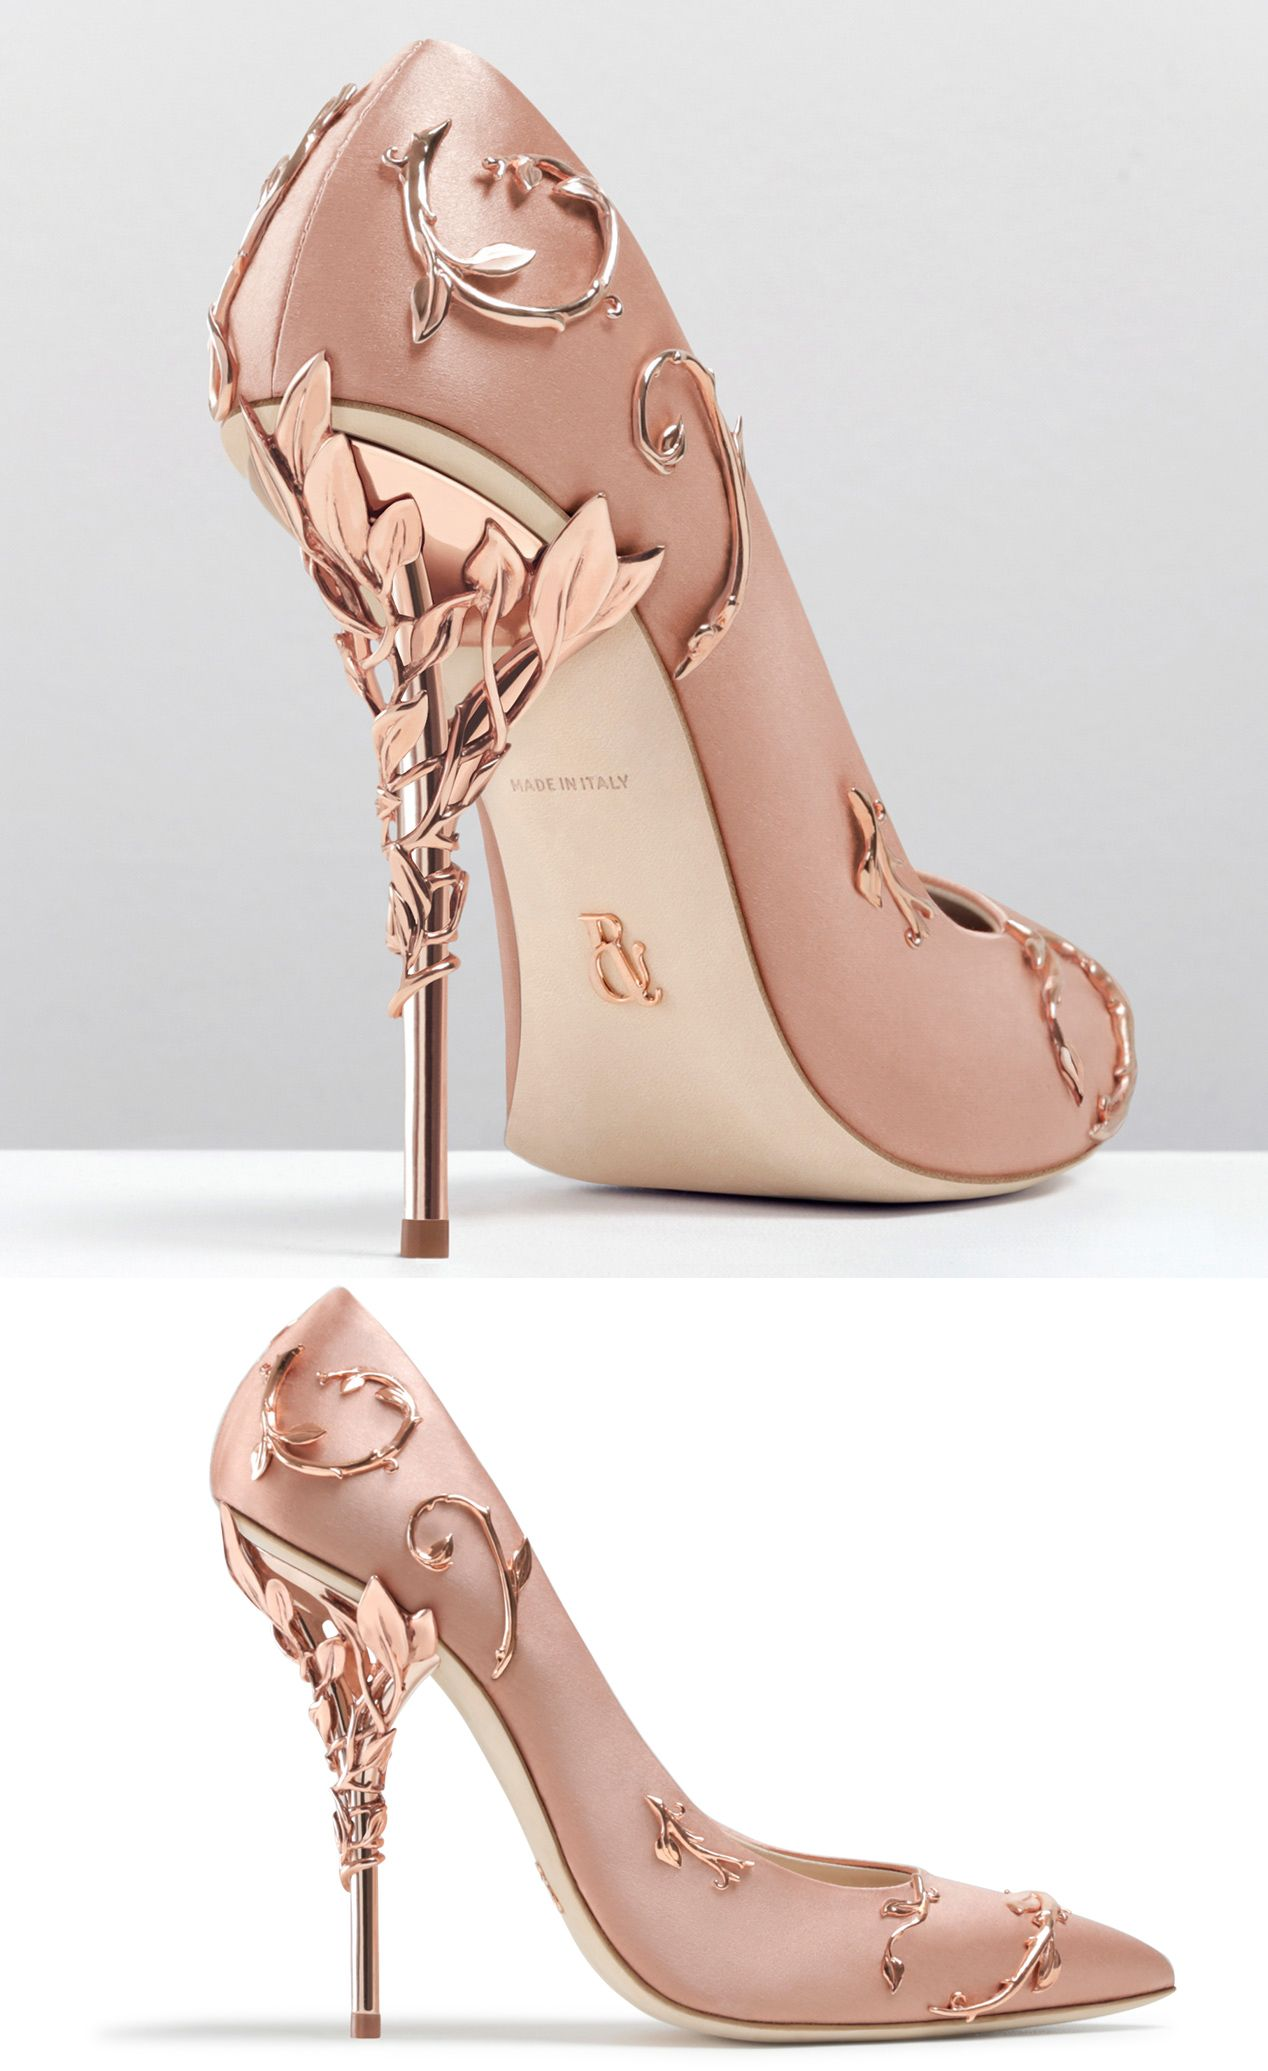 Ralph And Russo Rose Gold Wedding Pumps With Ornamental Filigree Leaves Spiralling Up The Heel